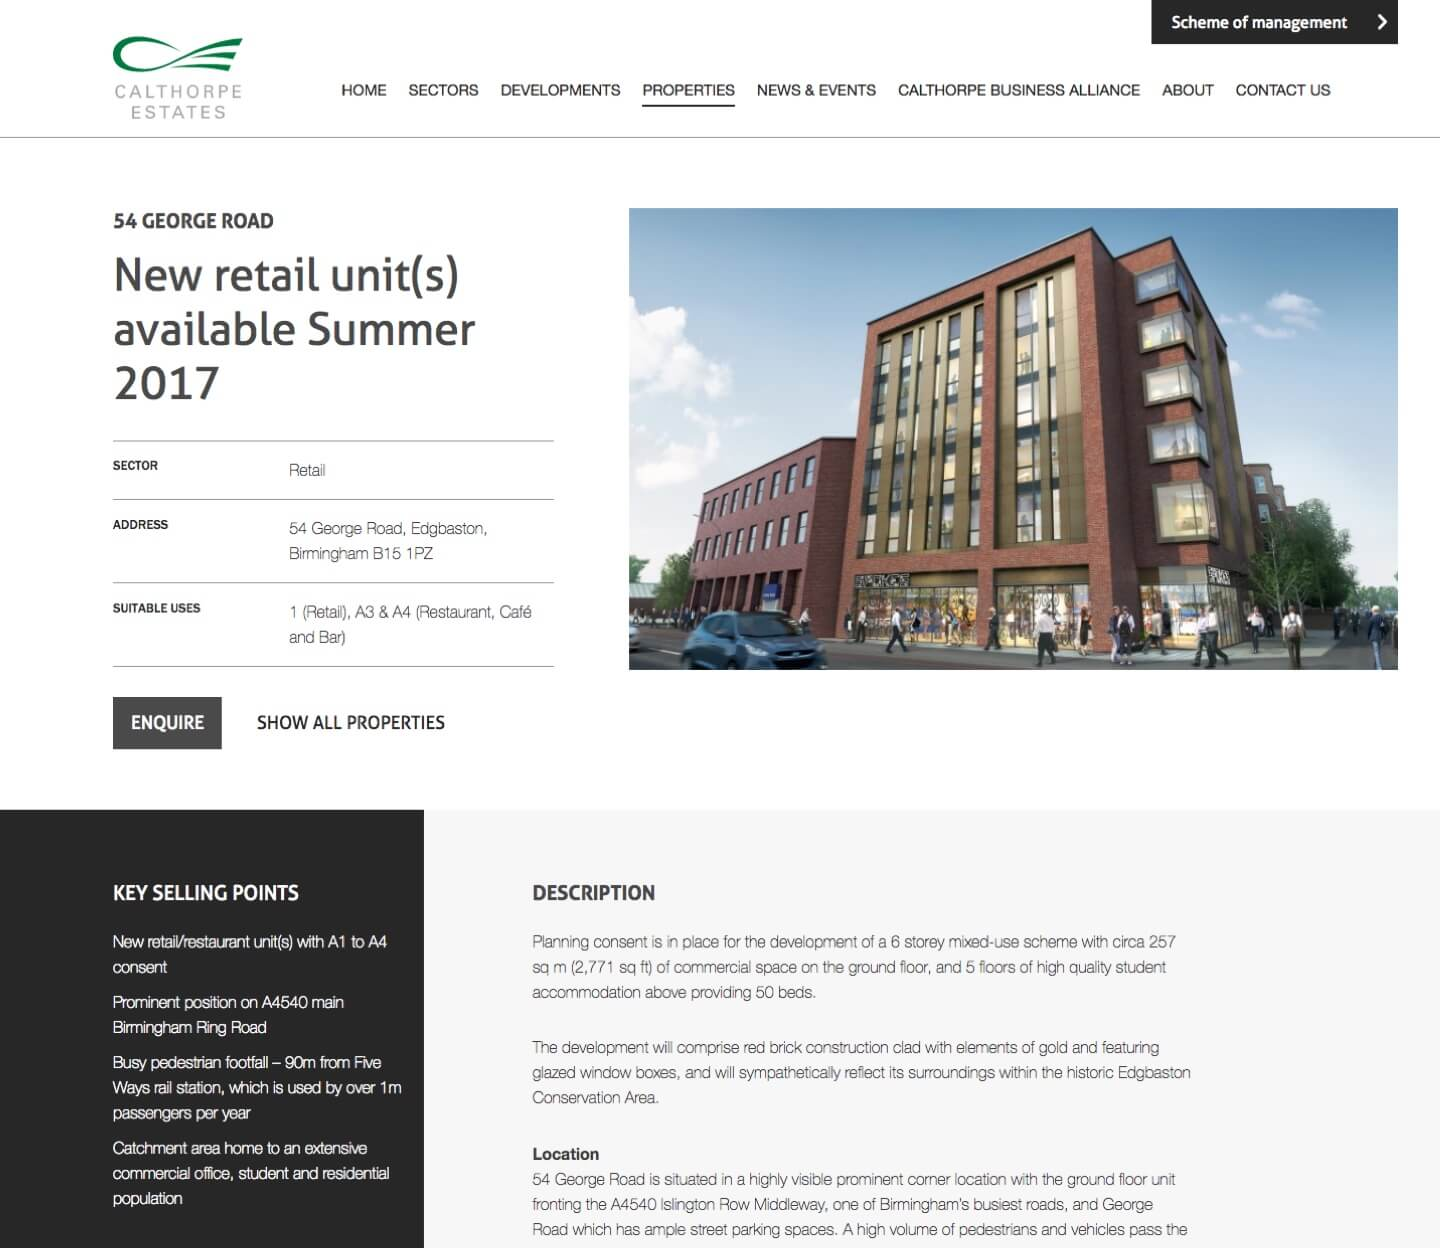 Screenshot of Calthorpe Estate Website